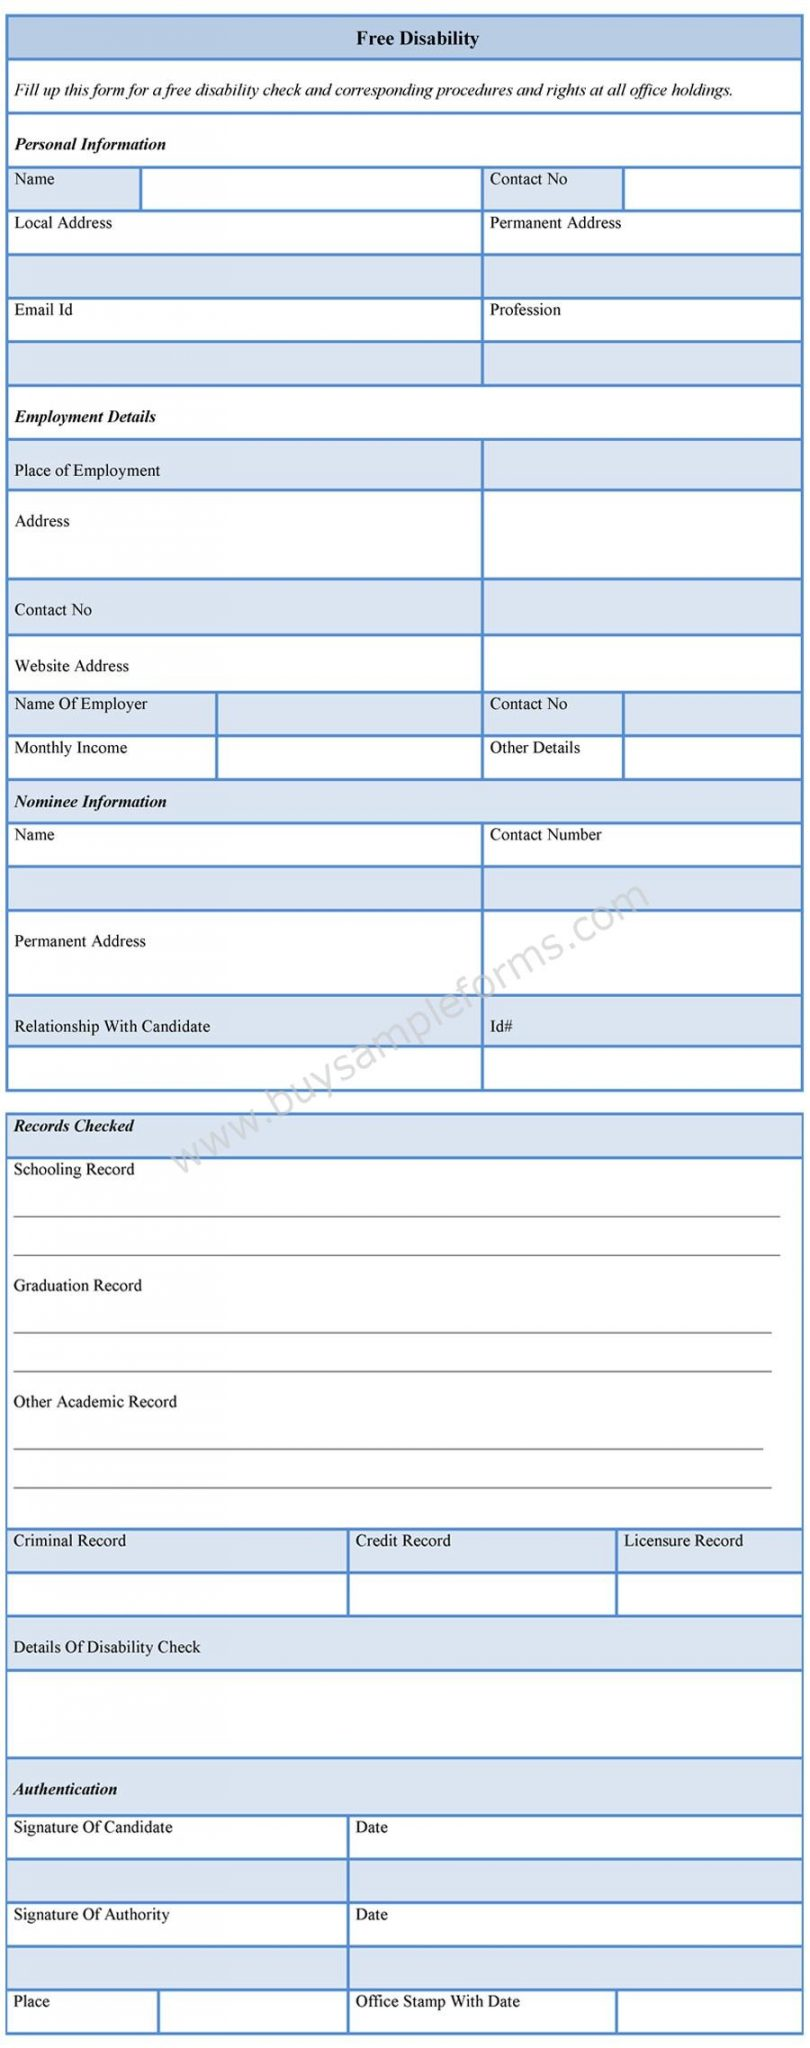 Free Disability Forms